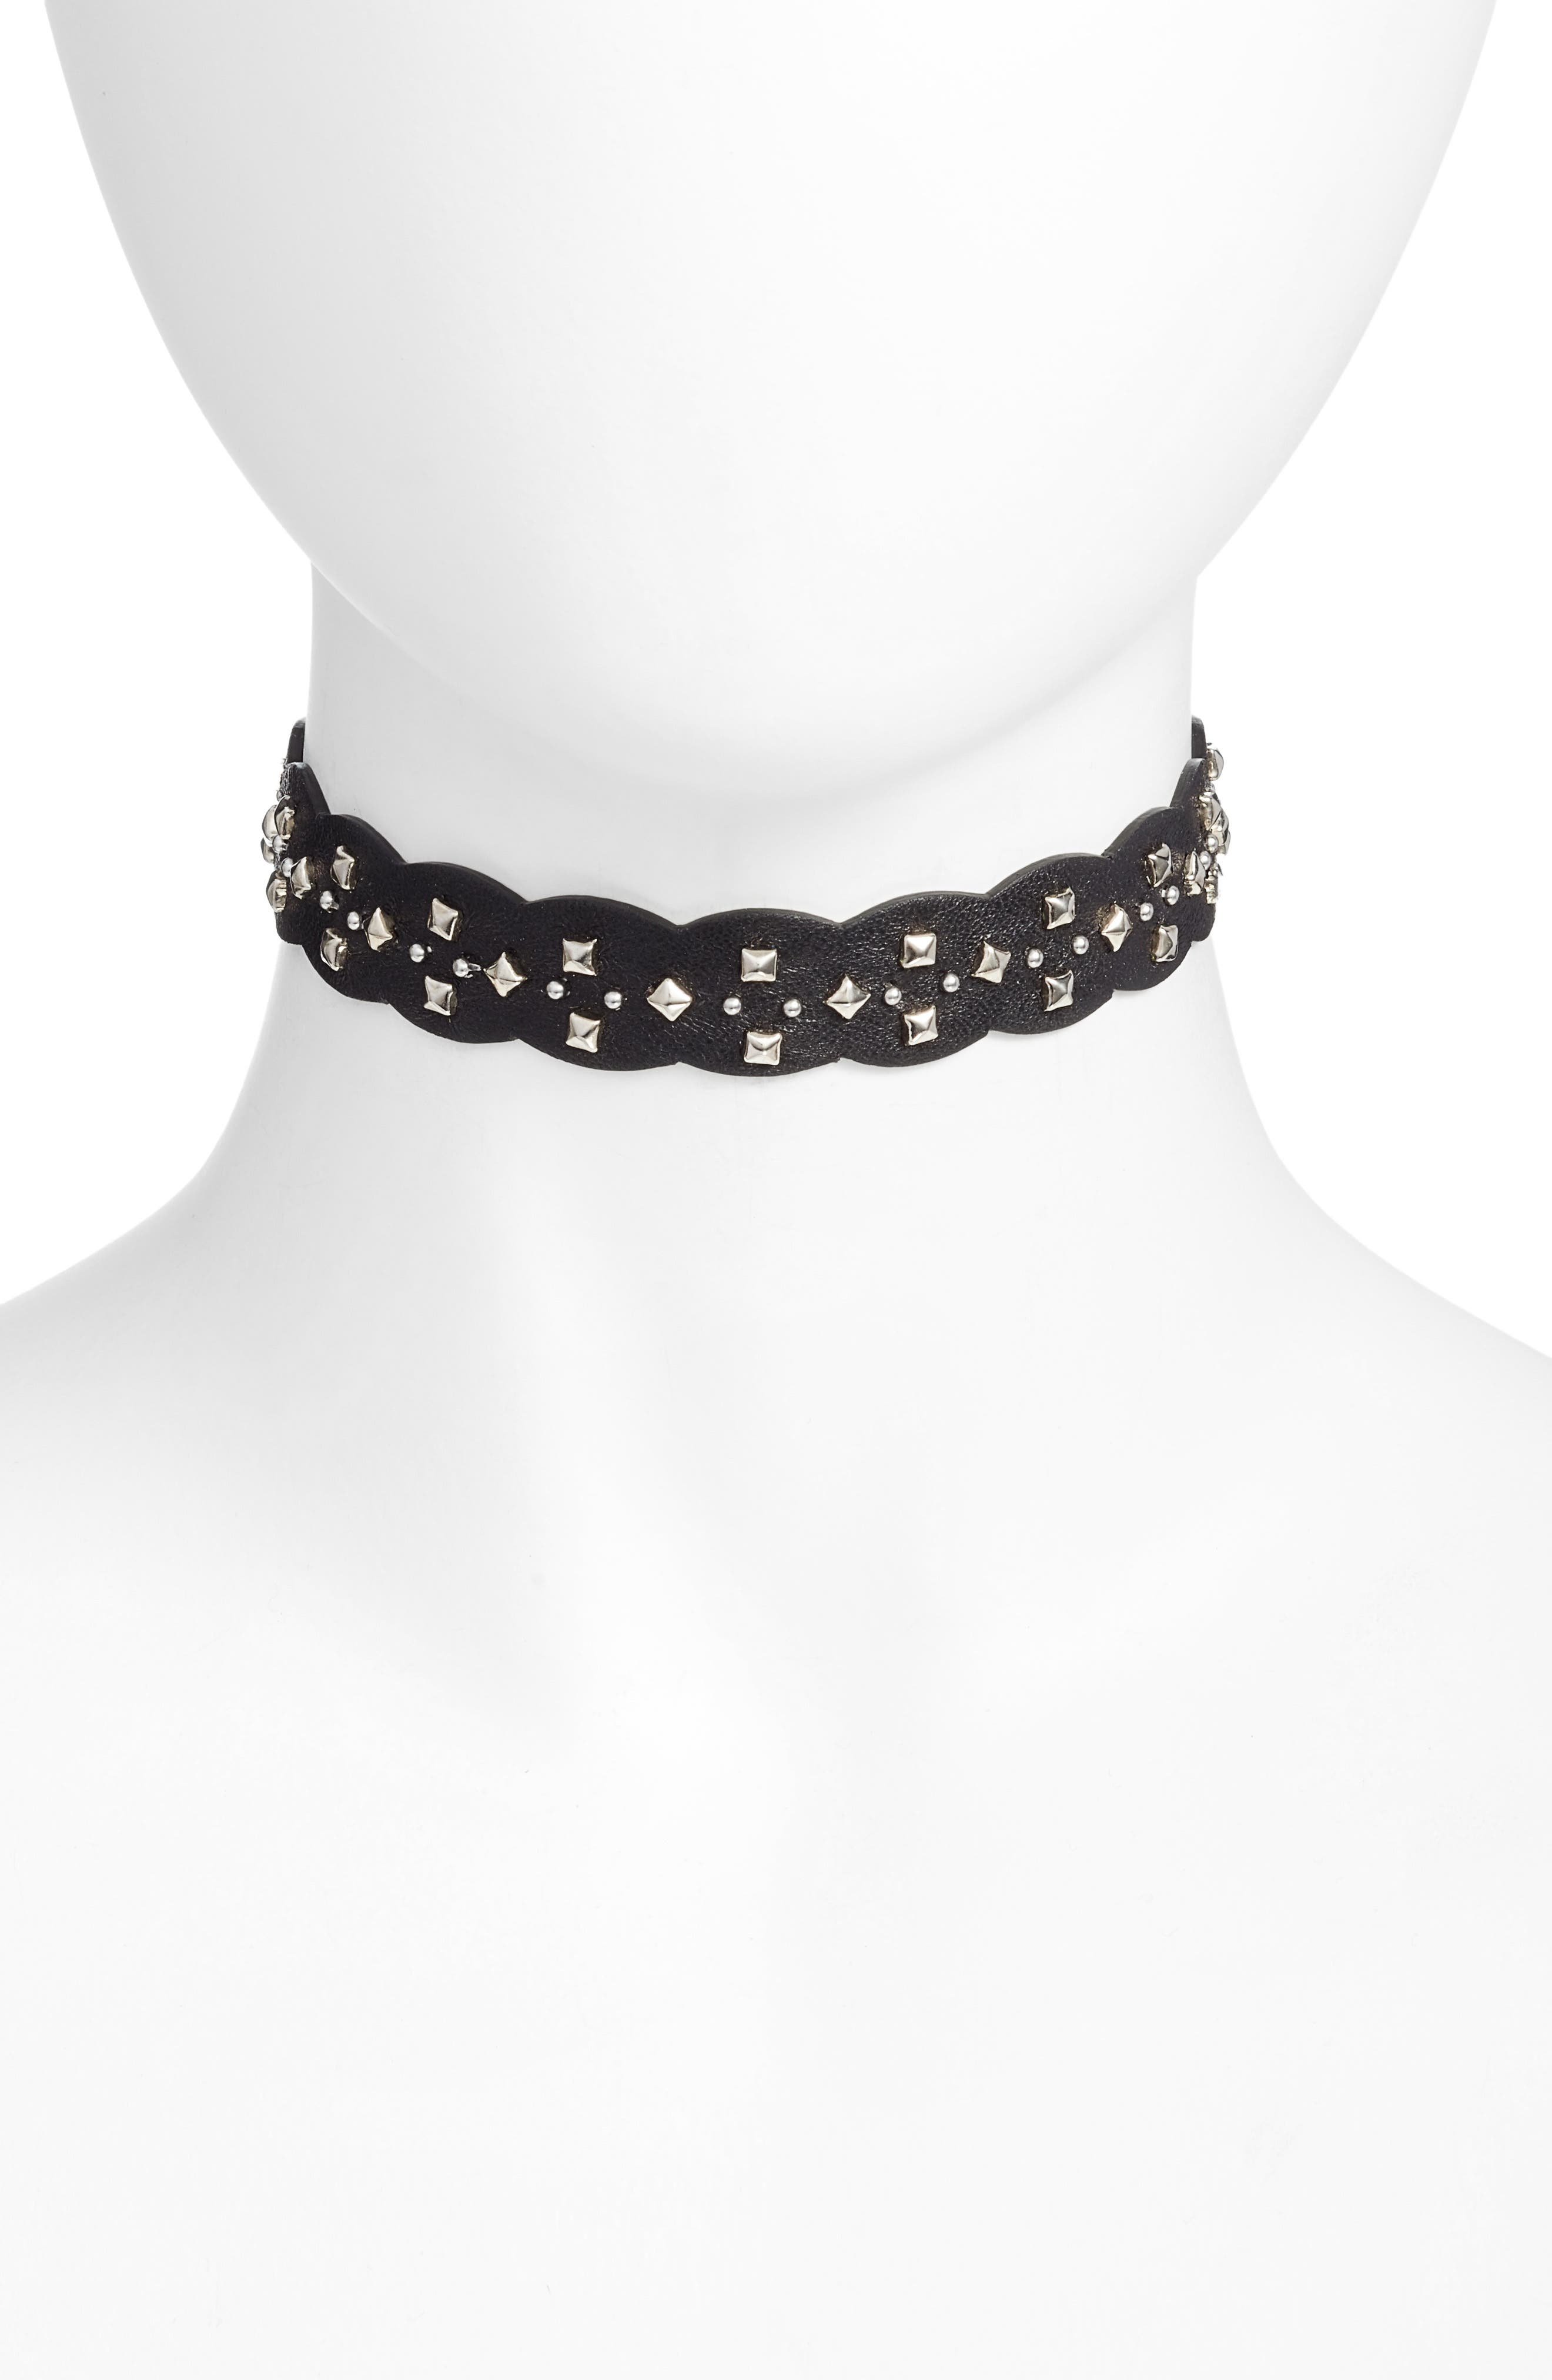 Main Image - Rebecca Minkoff Leather Choker Necklace